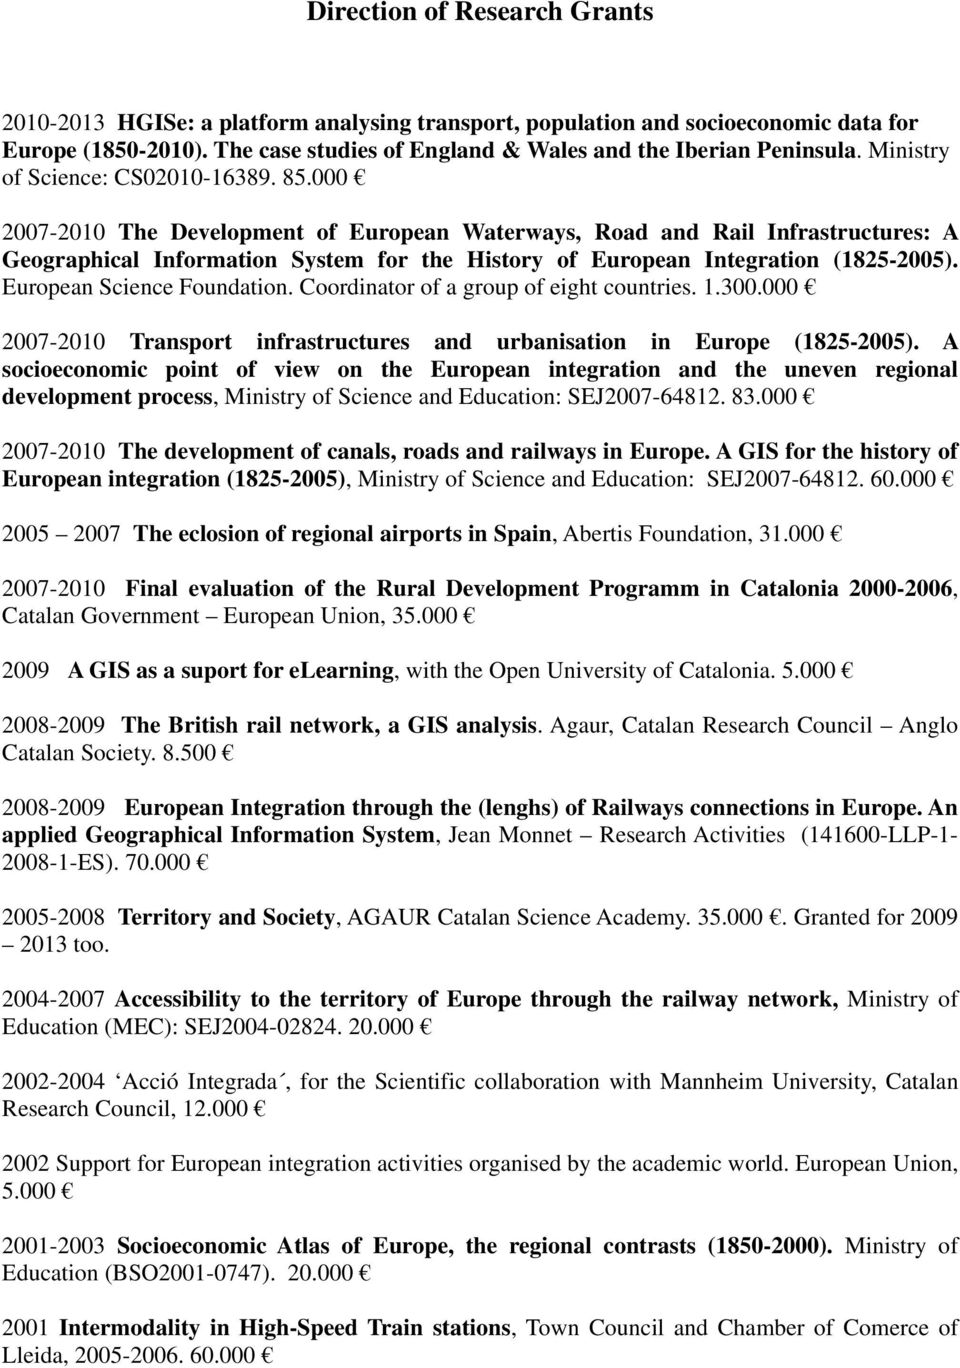 000 2007-2010 The Development of European Waterways, Road and Rail Infrastructures: A Geographical Information System for the History of European Integration (1825-2005). European Science Foundation.